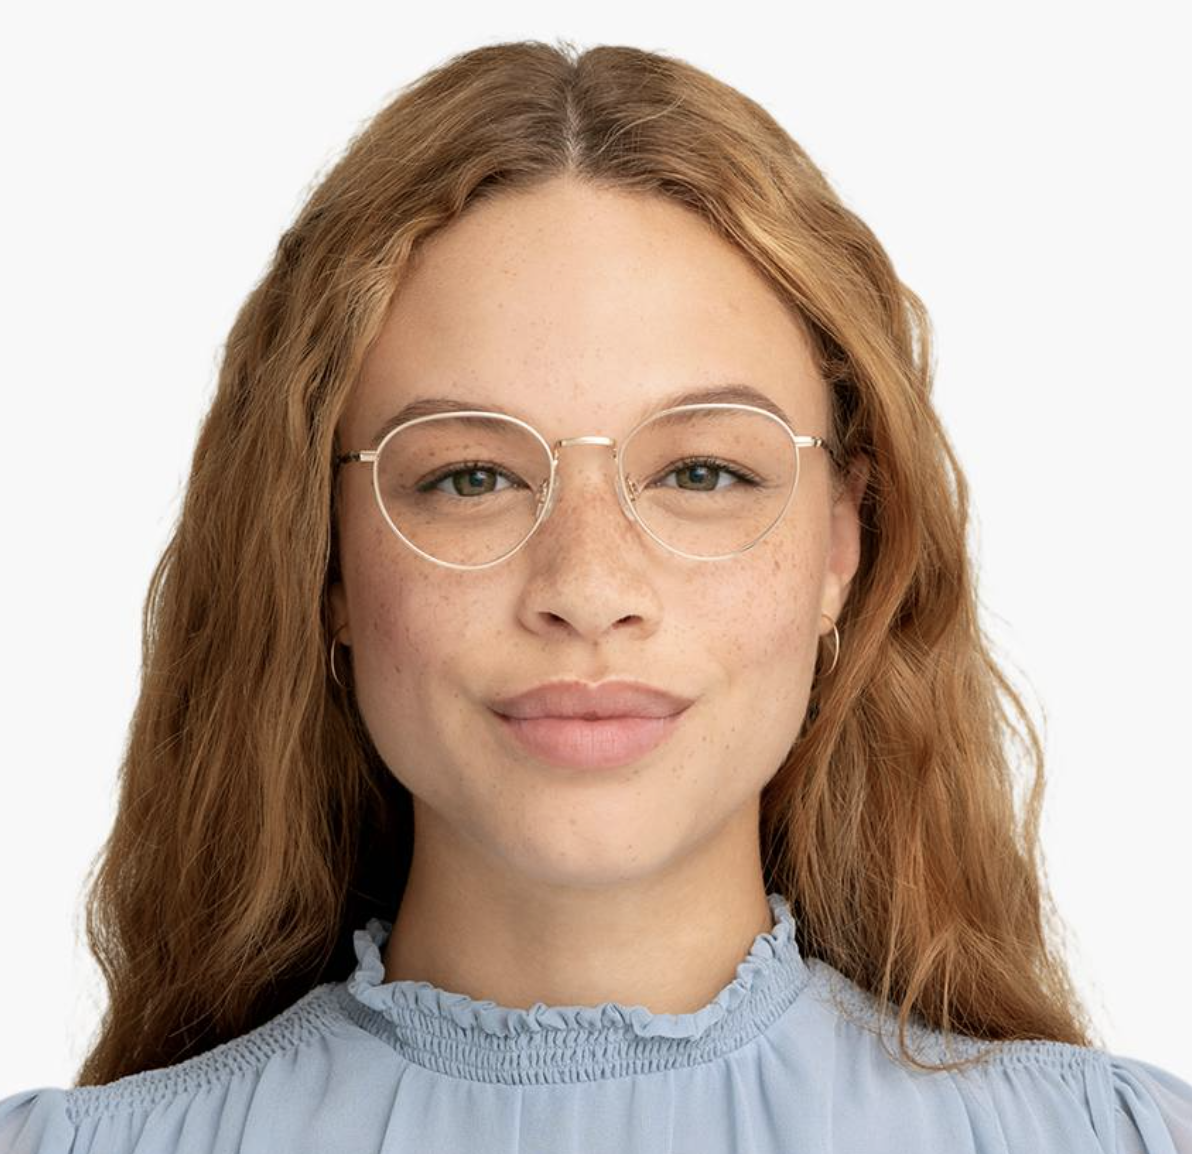 person with the glasses on